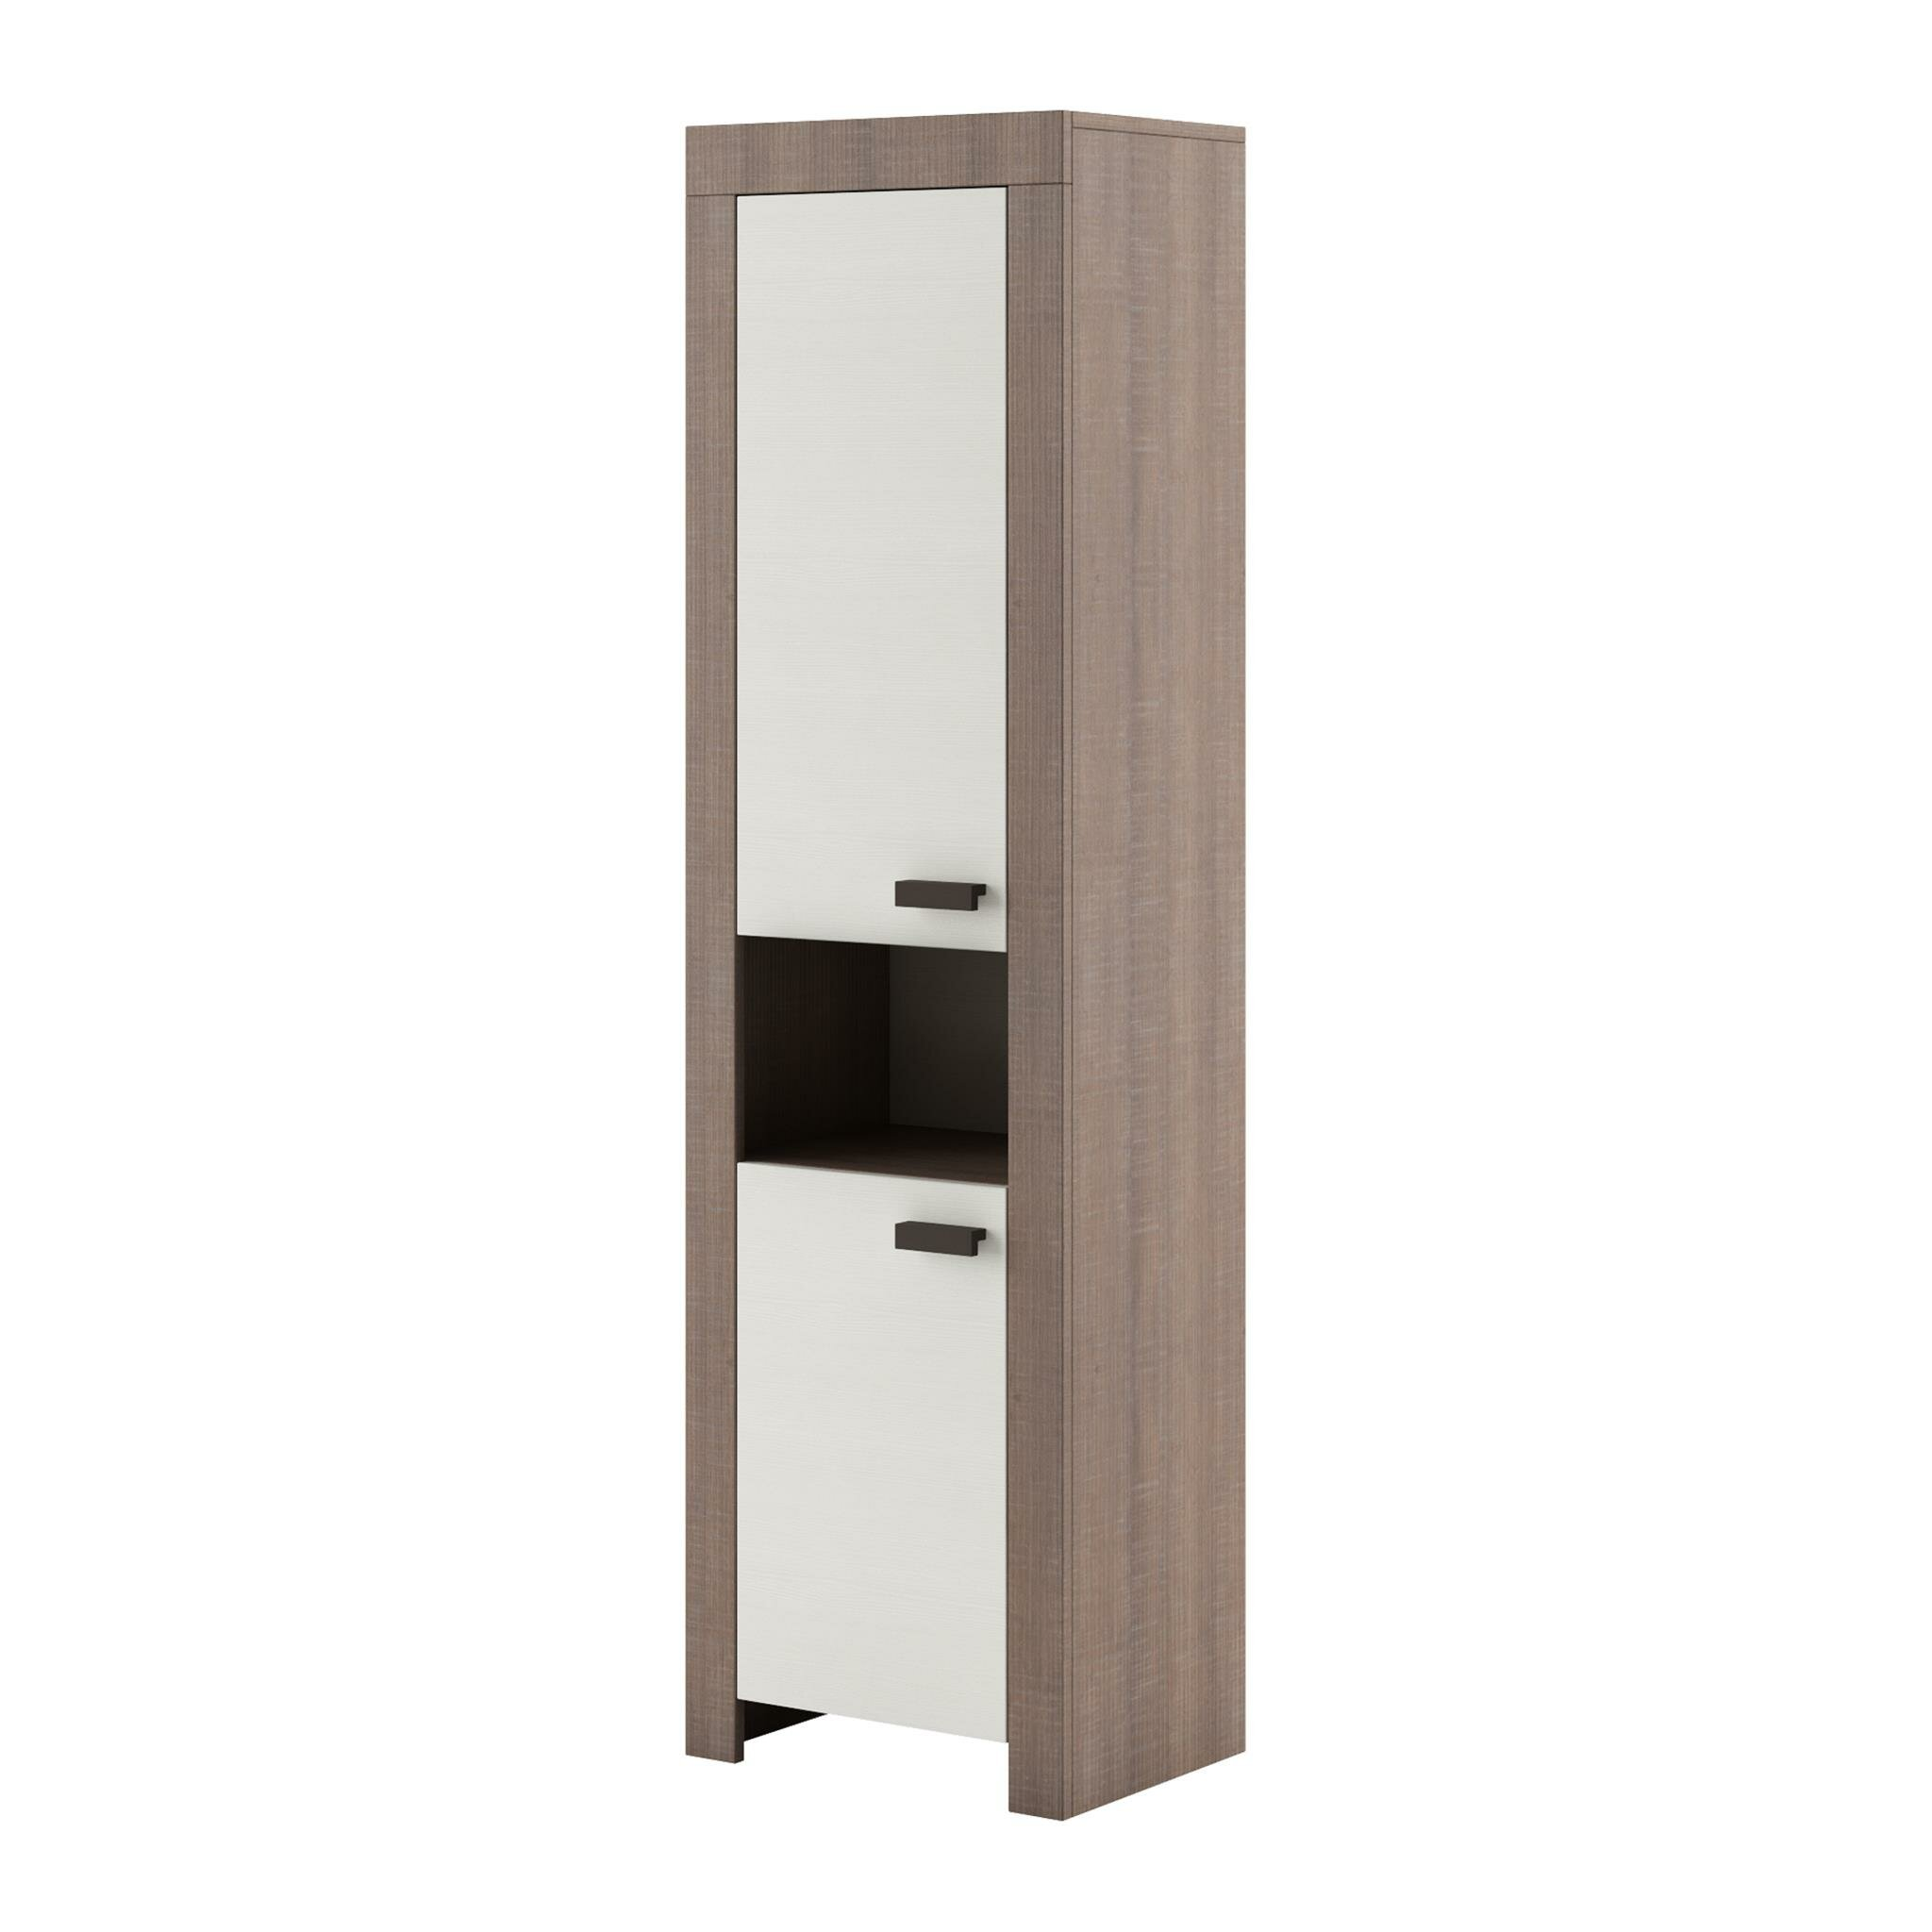 Brayden Studio Madelyn 2 Door Armoire | Wayfair